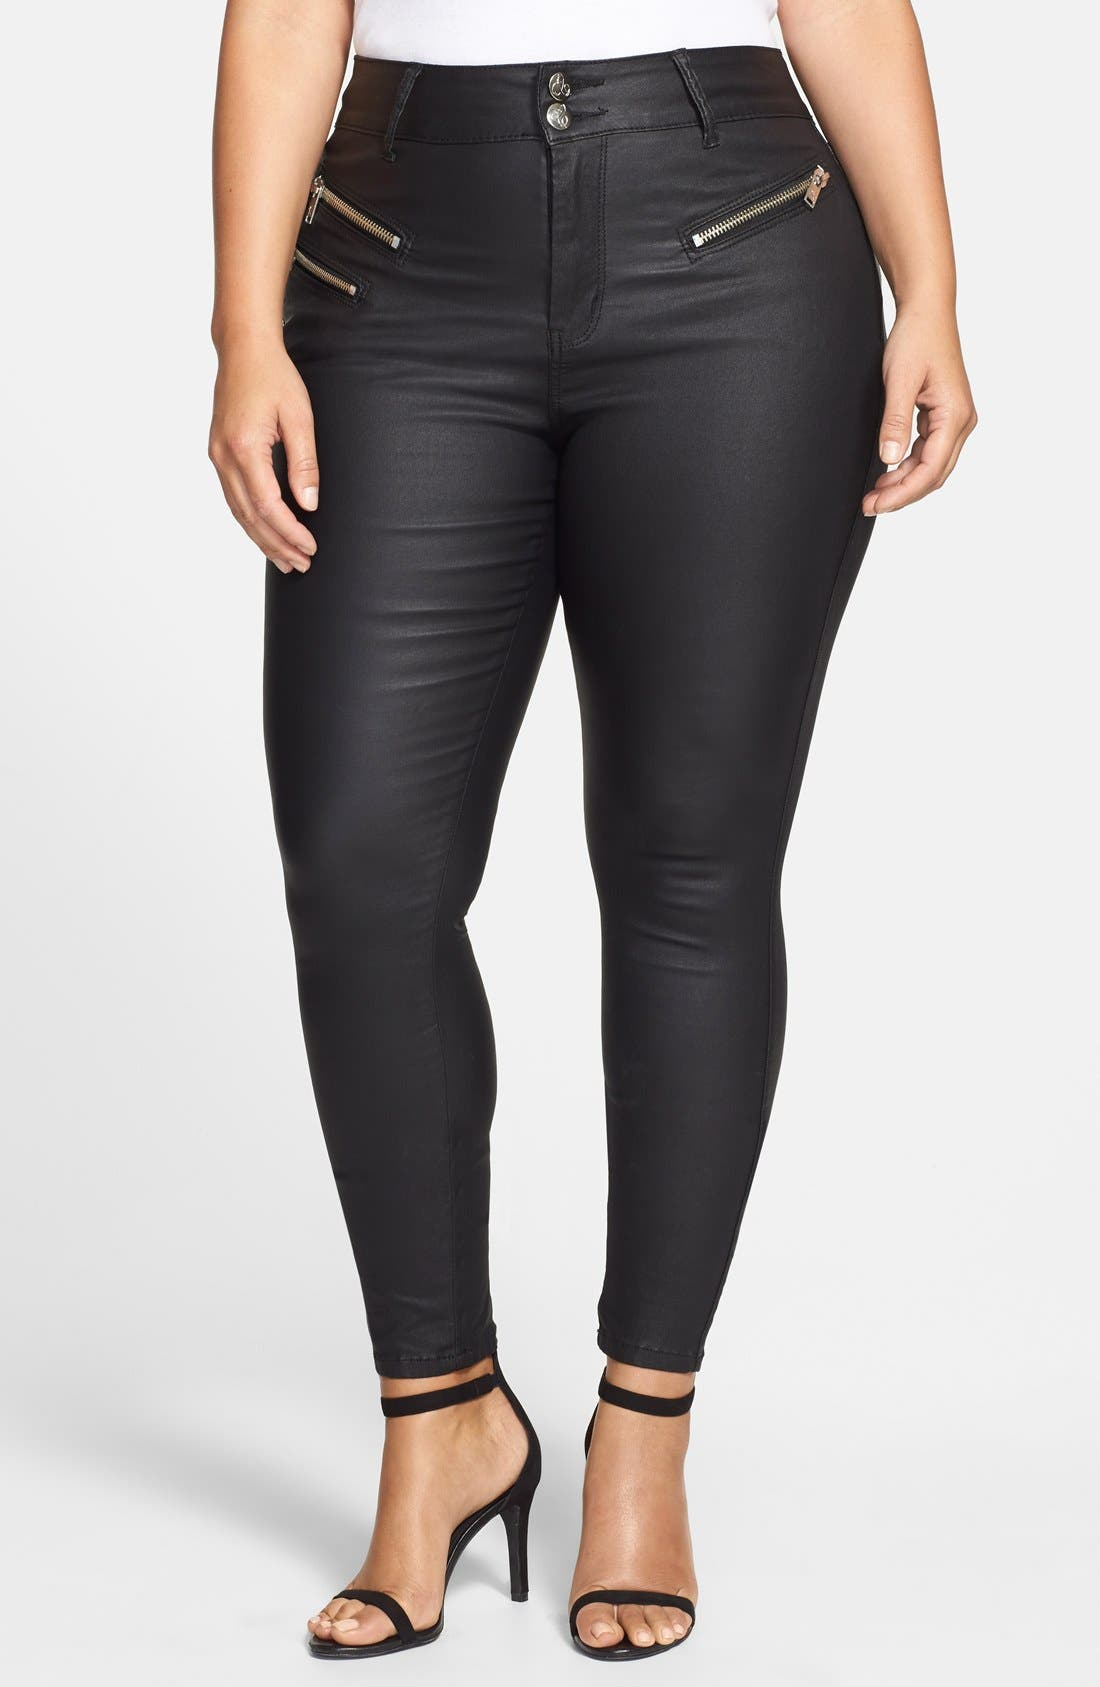 Main Image - City Chic 'Wet Look' Stretch Skinny Jeans (Black) (Plus Size)